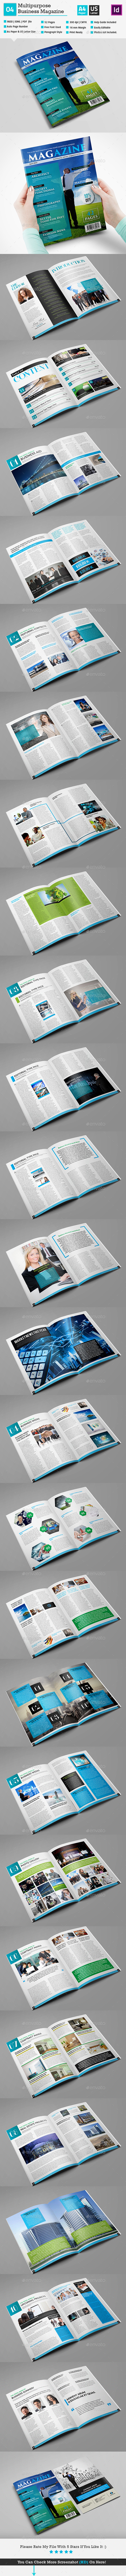 GraphicRiver Magazine Template- Indesign 52 Page Layout 10823679